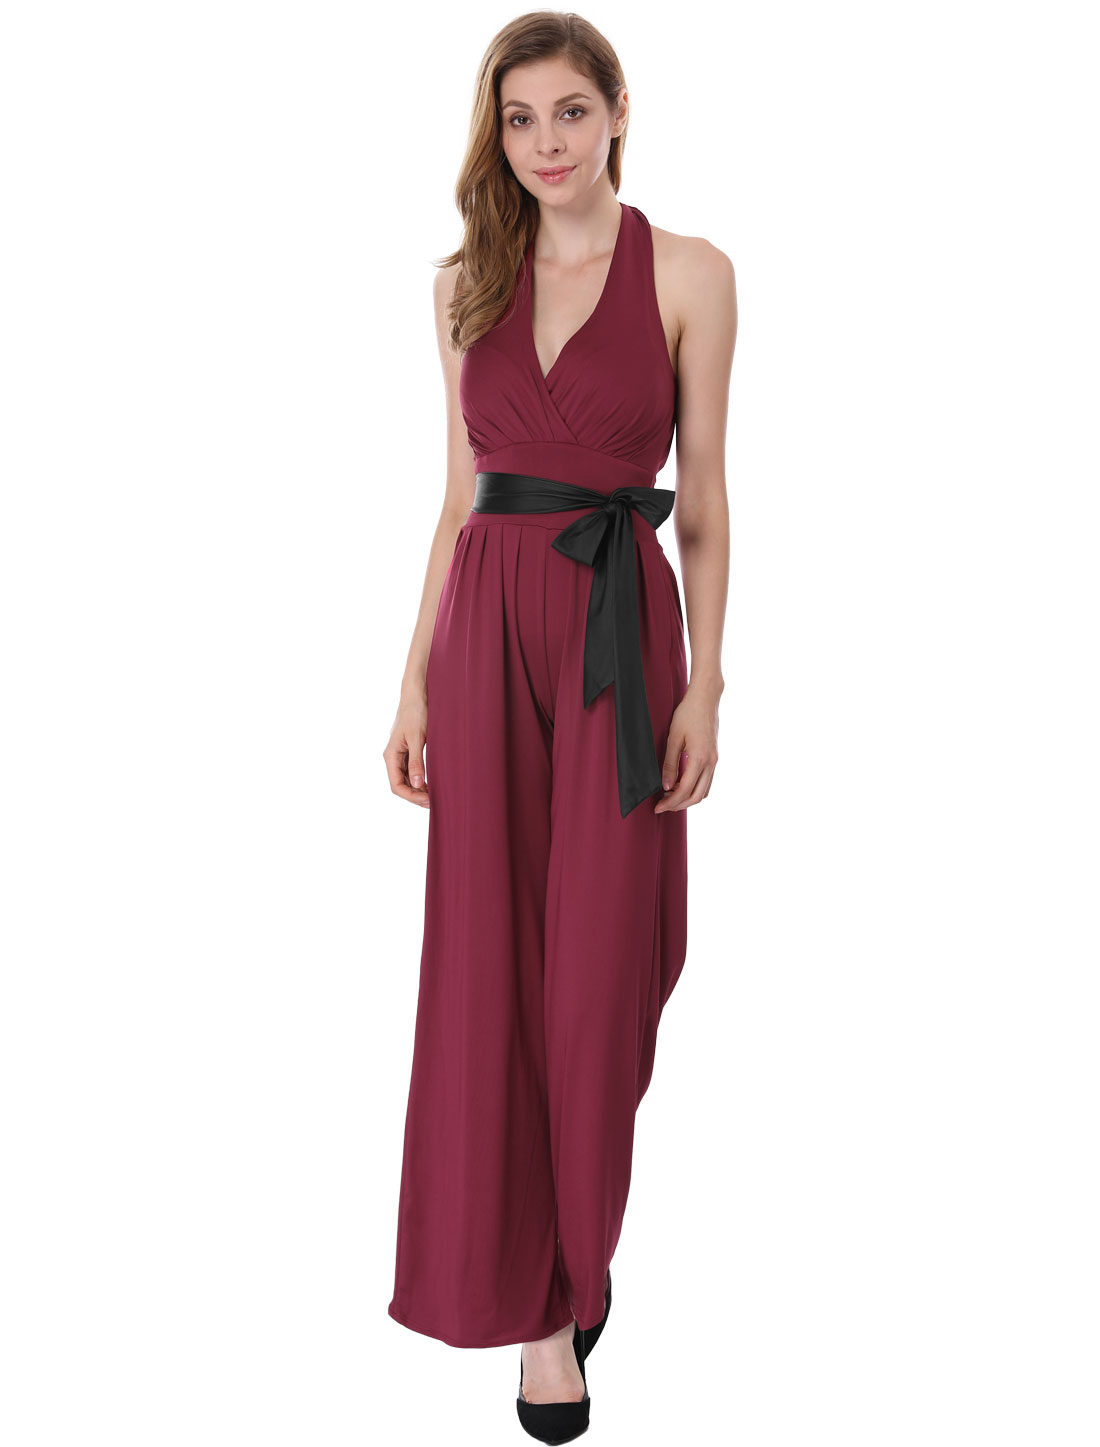 Woman Burgundy Deep V Neck Backless Halter Romper Jumpsuit S